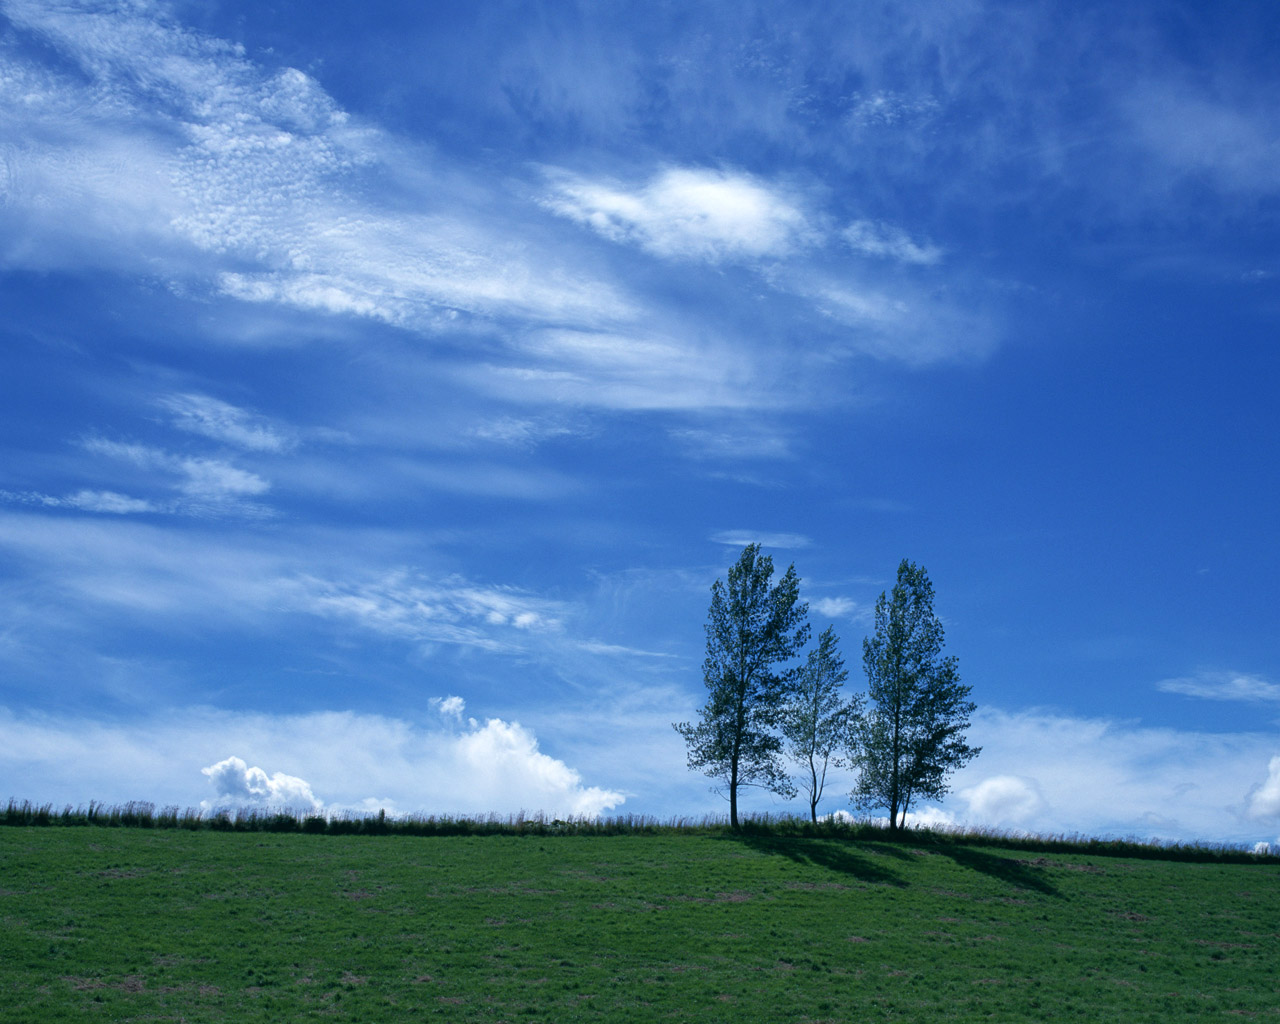 Blue and white wallpaper 5038